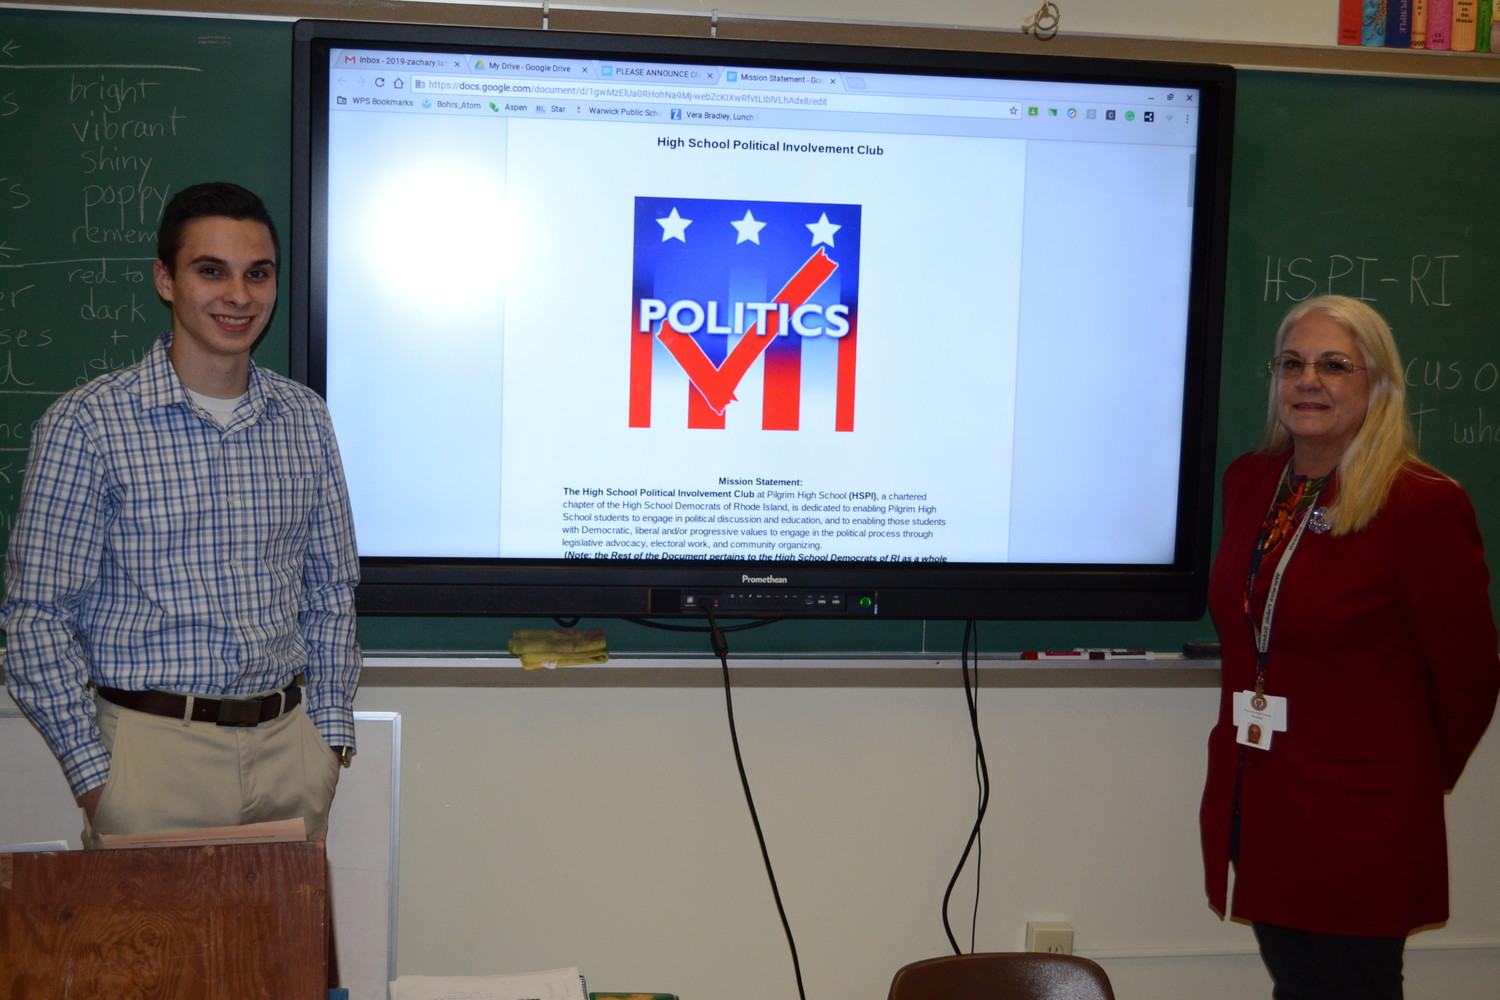 Pilgrim Class of 2019 president Zachary LaFontaine and English teacher Paula Merdink collaborated to start the first Political Involvement Chapter in Warwick.